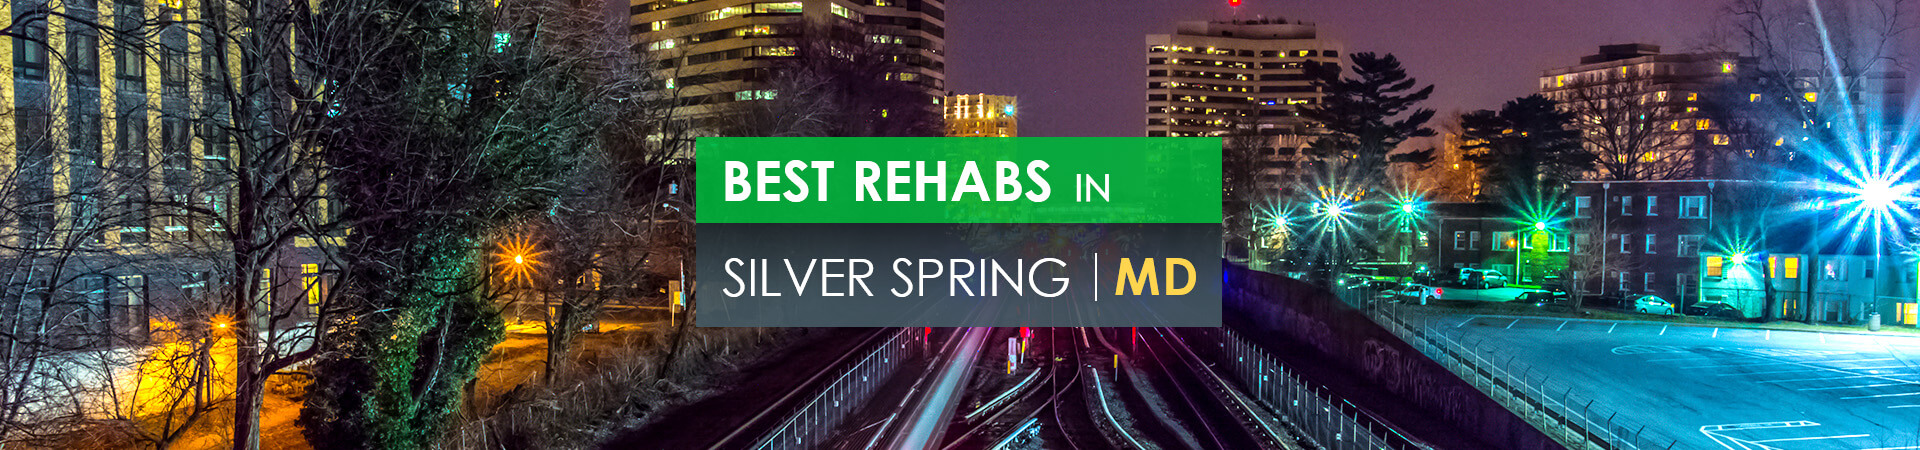 Best rehabs in Silver Spring, MD